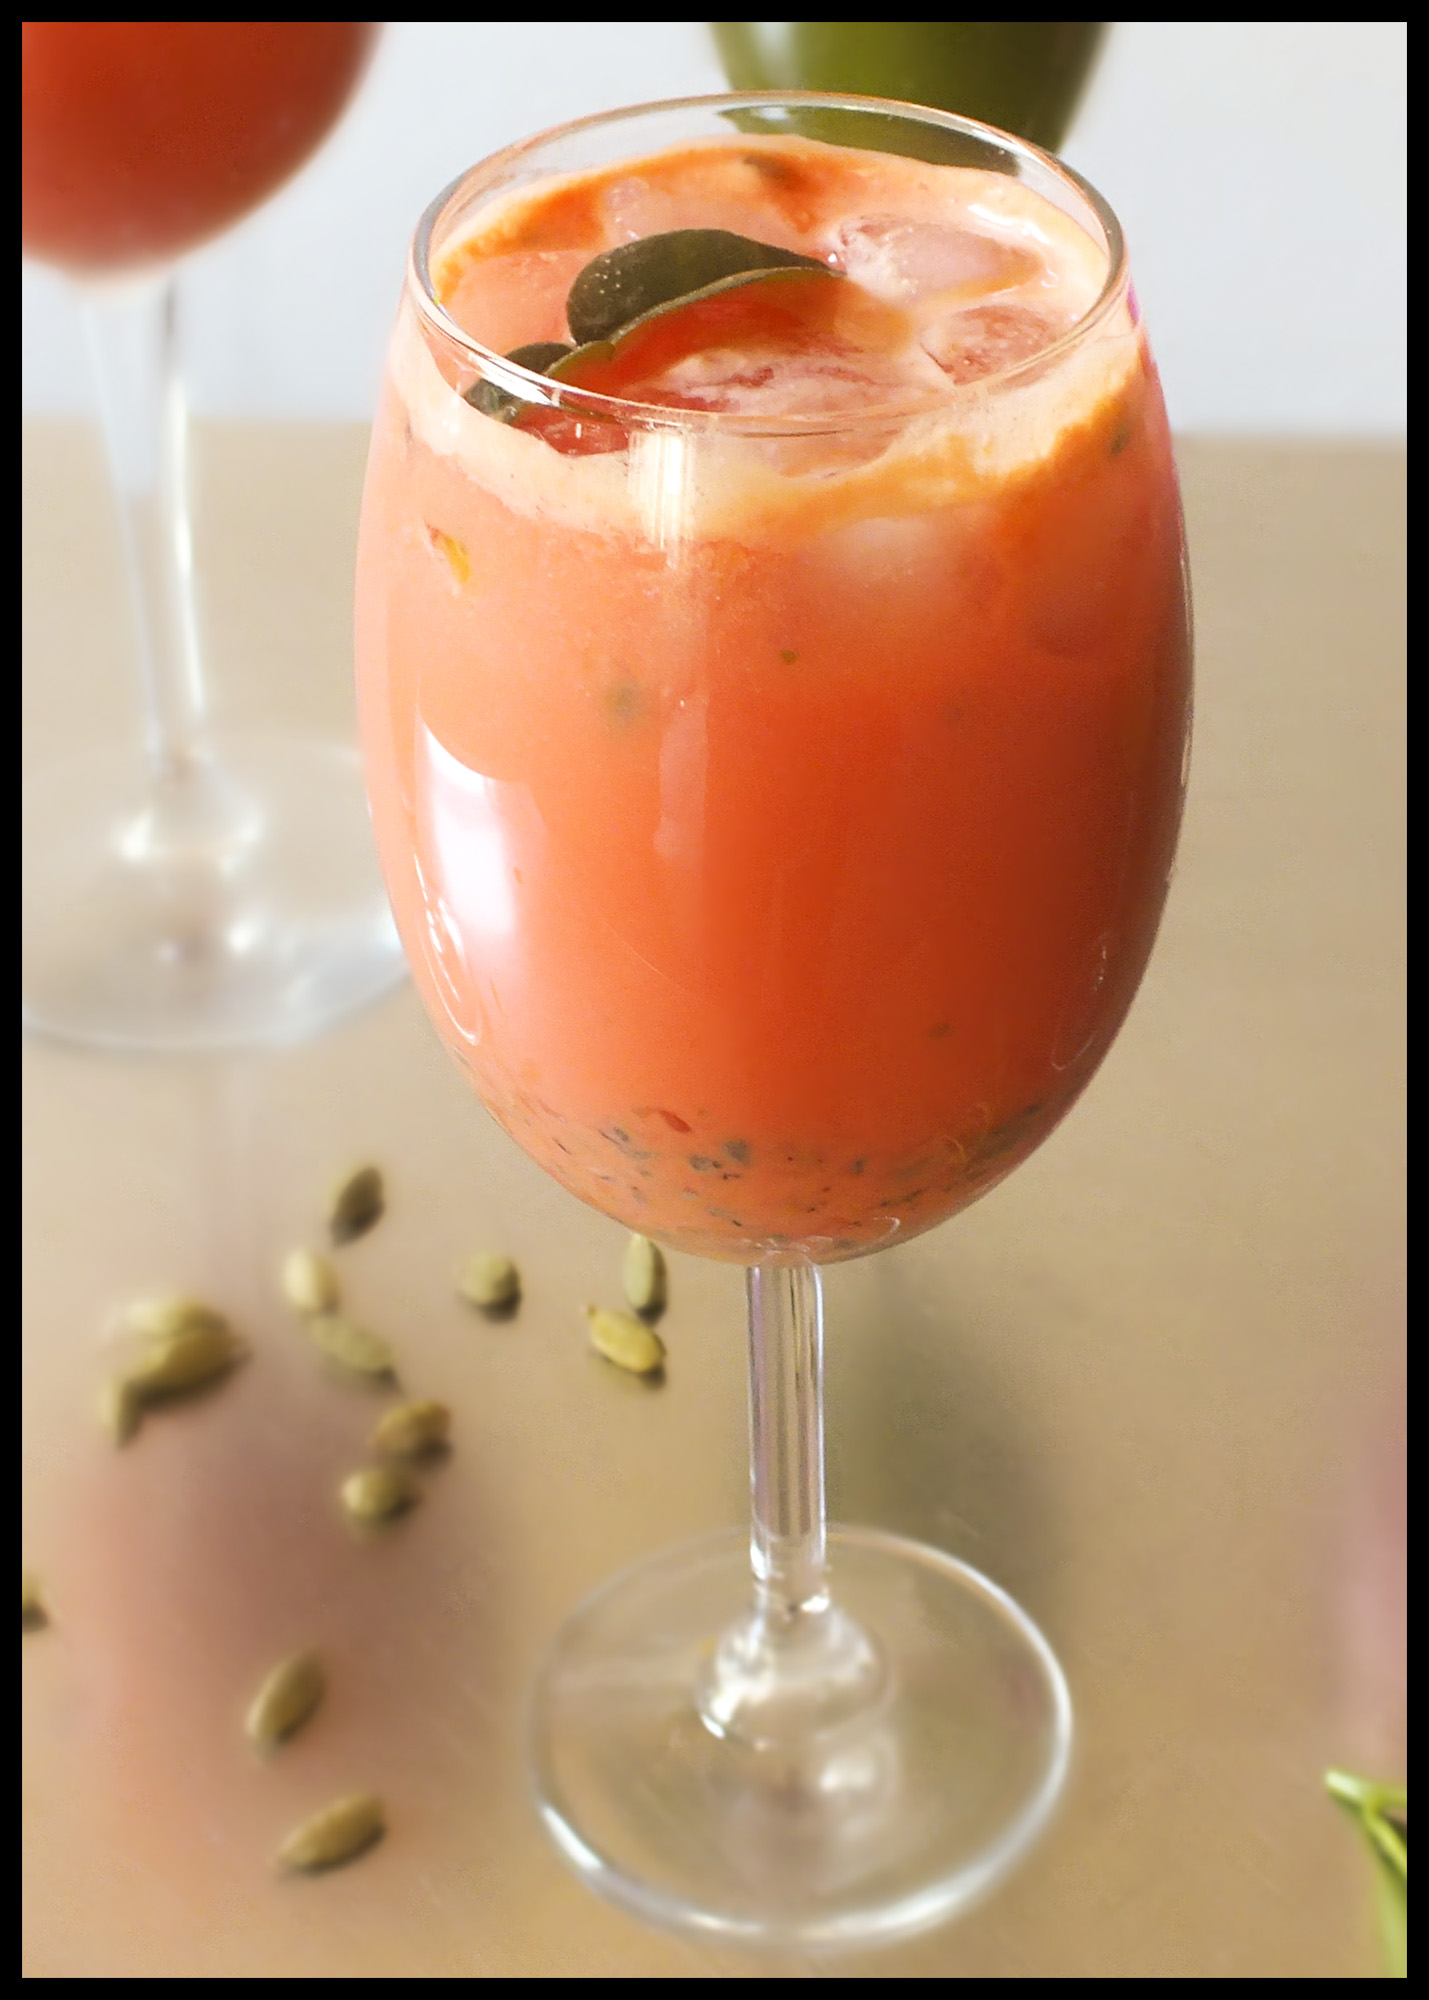 Trish's carrot, coconut milk, passion fruit and lime smoothie